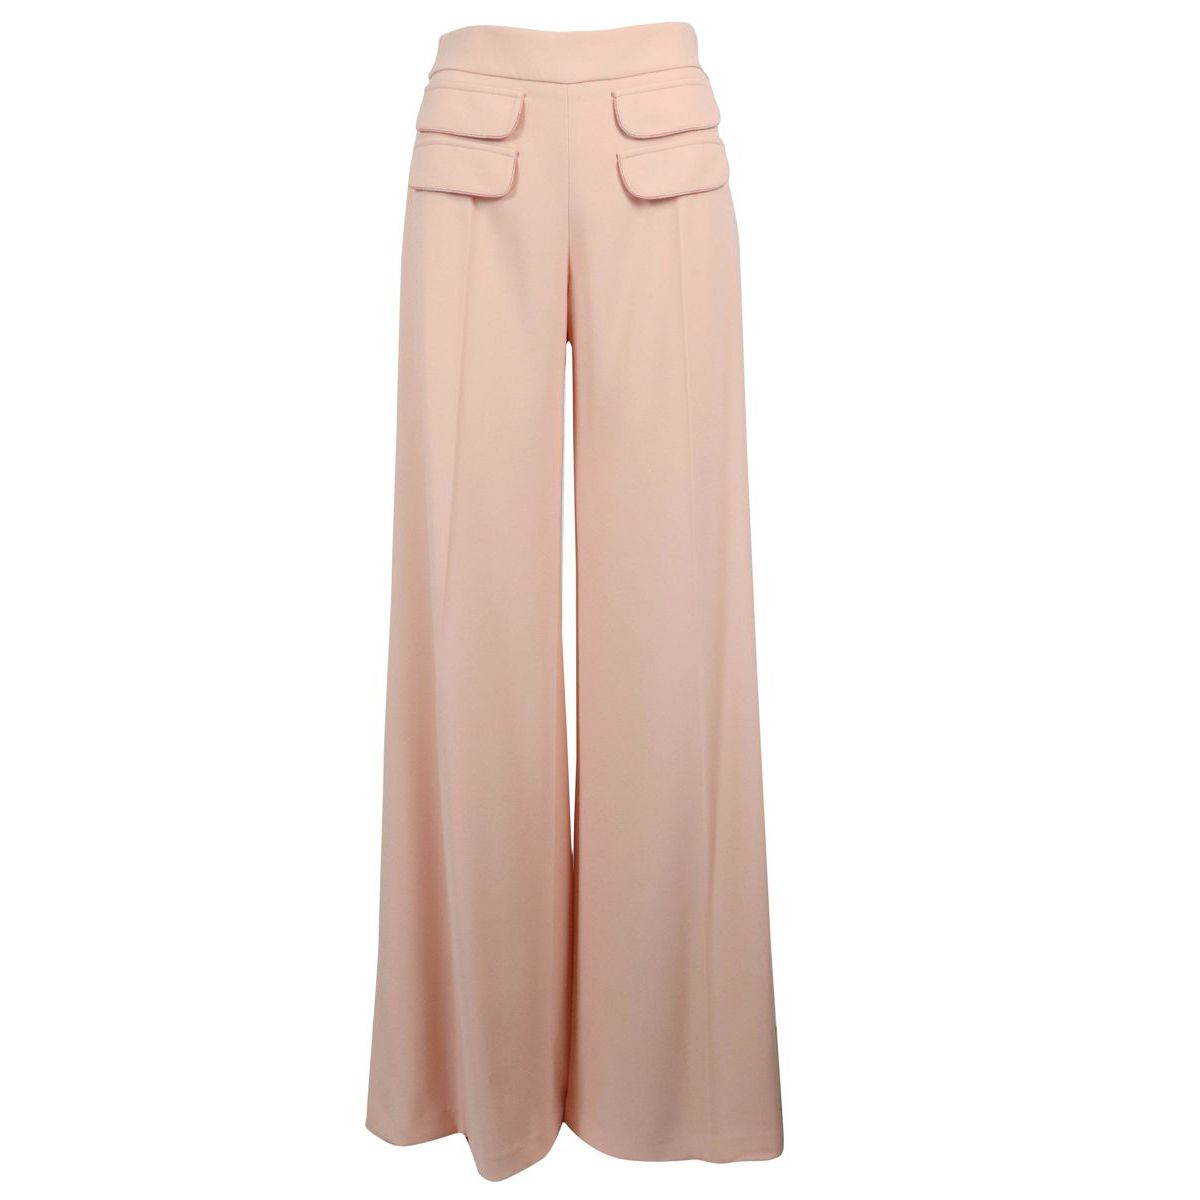 Palazzo trousers with front pockets Antique pink Elisabetta Franchi